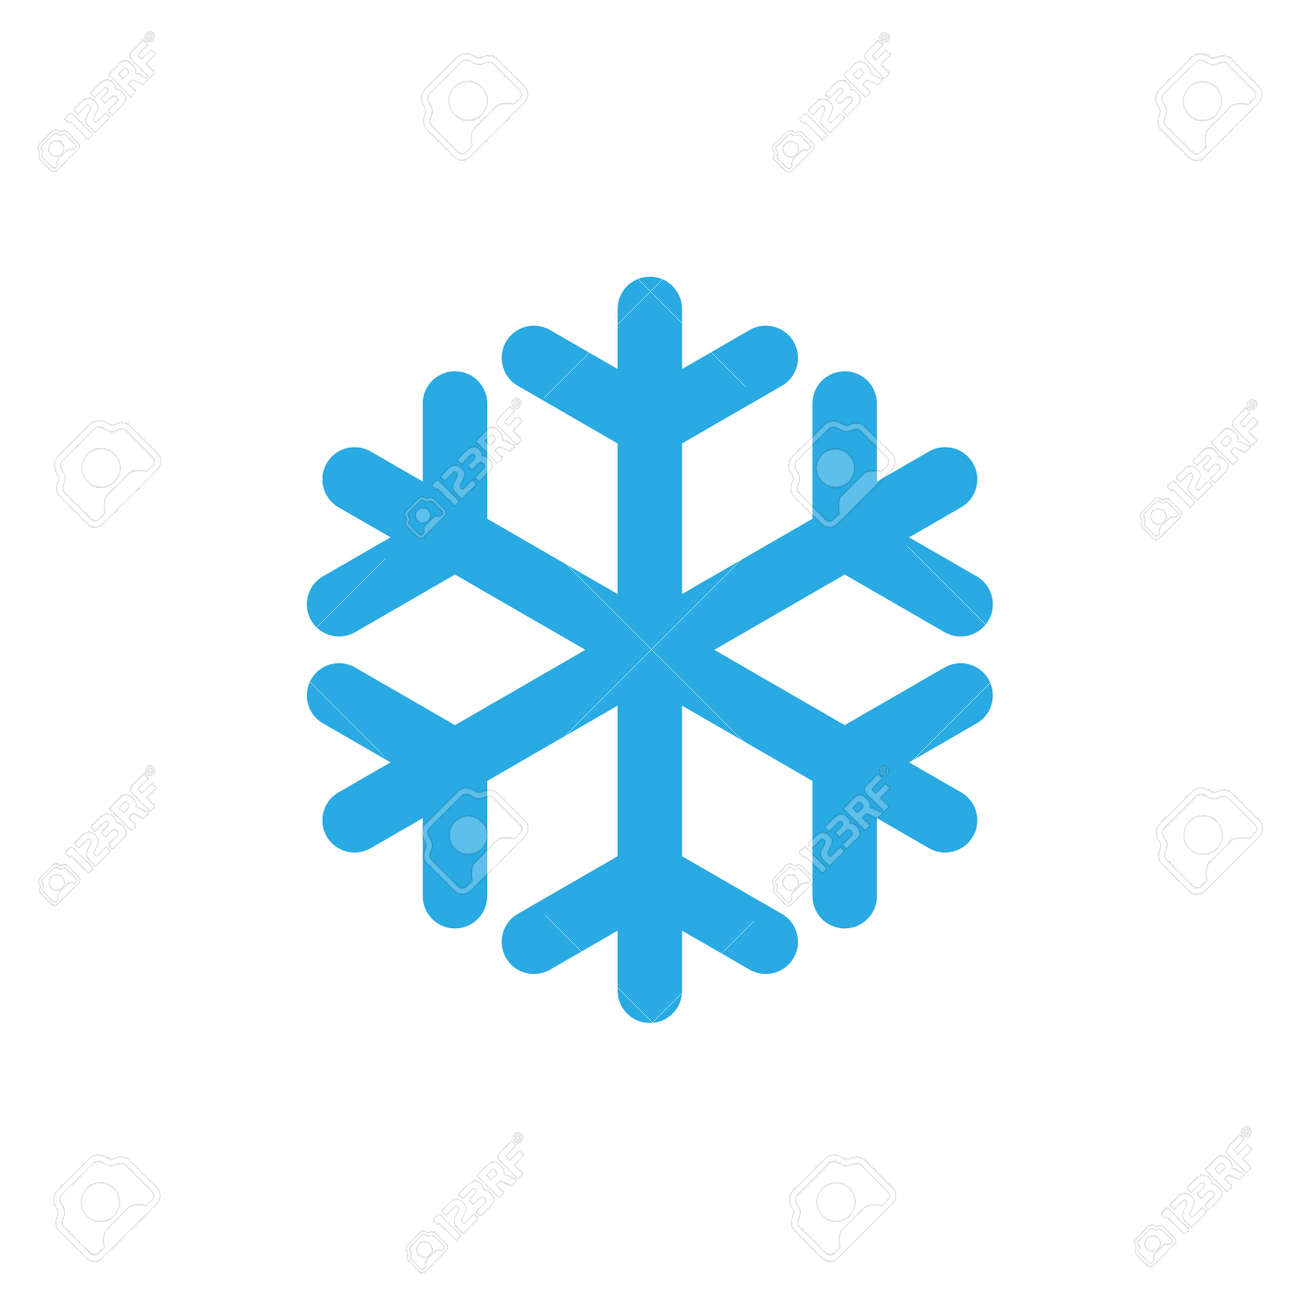 snowflake icon blue silhouette snow flake sign isolated on rh 123rf com snowflake vector line art snowflake background vector art free